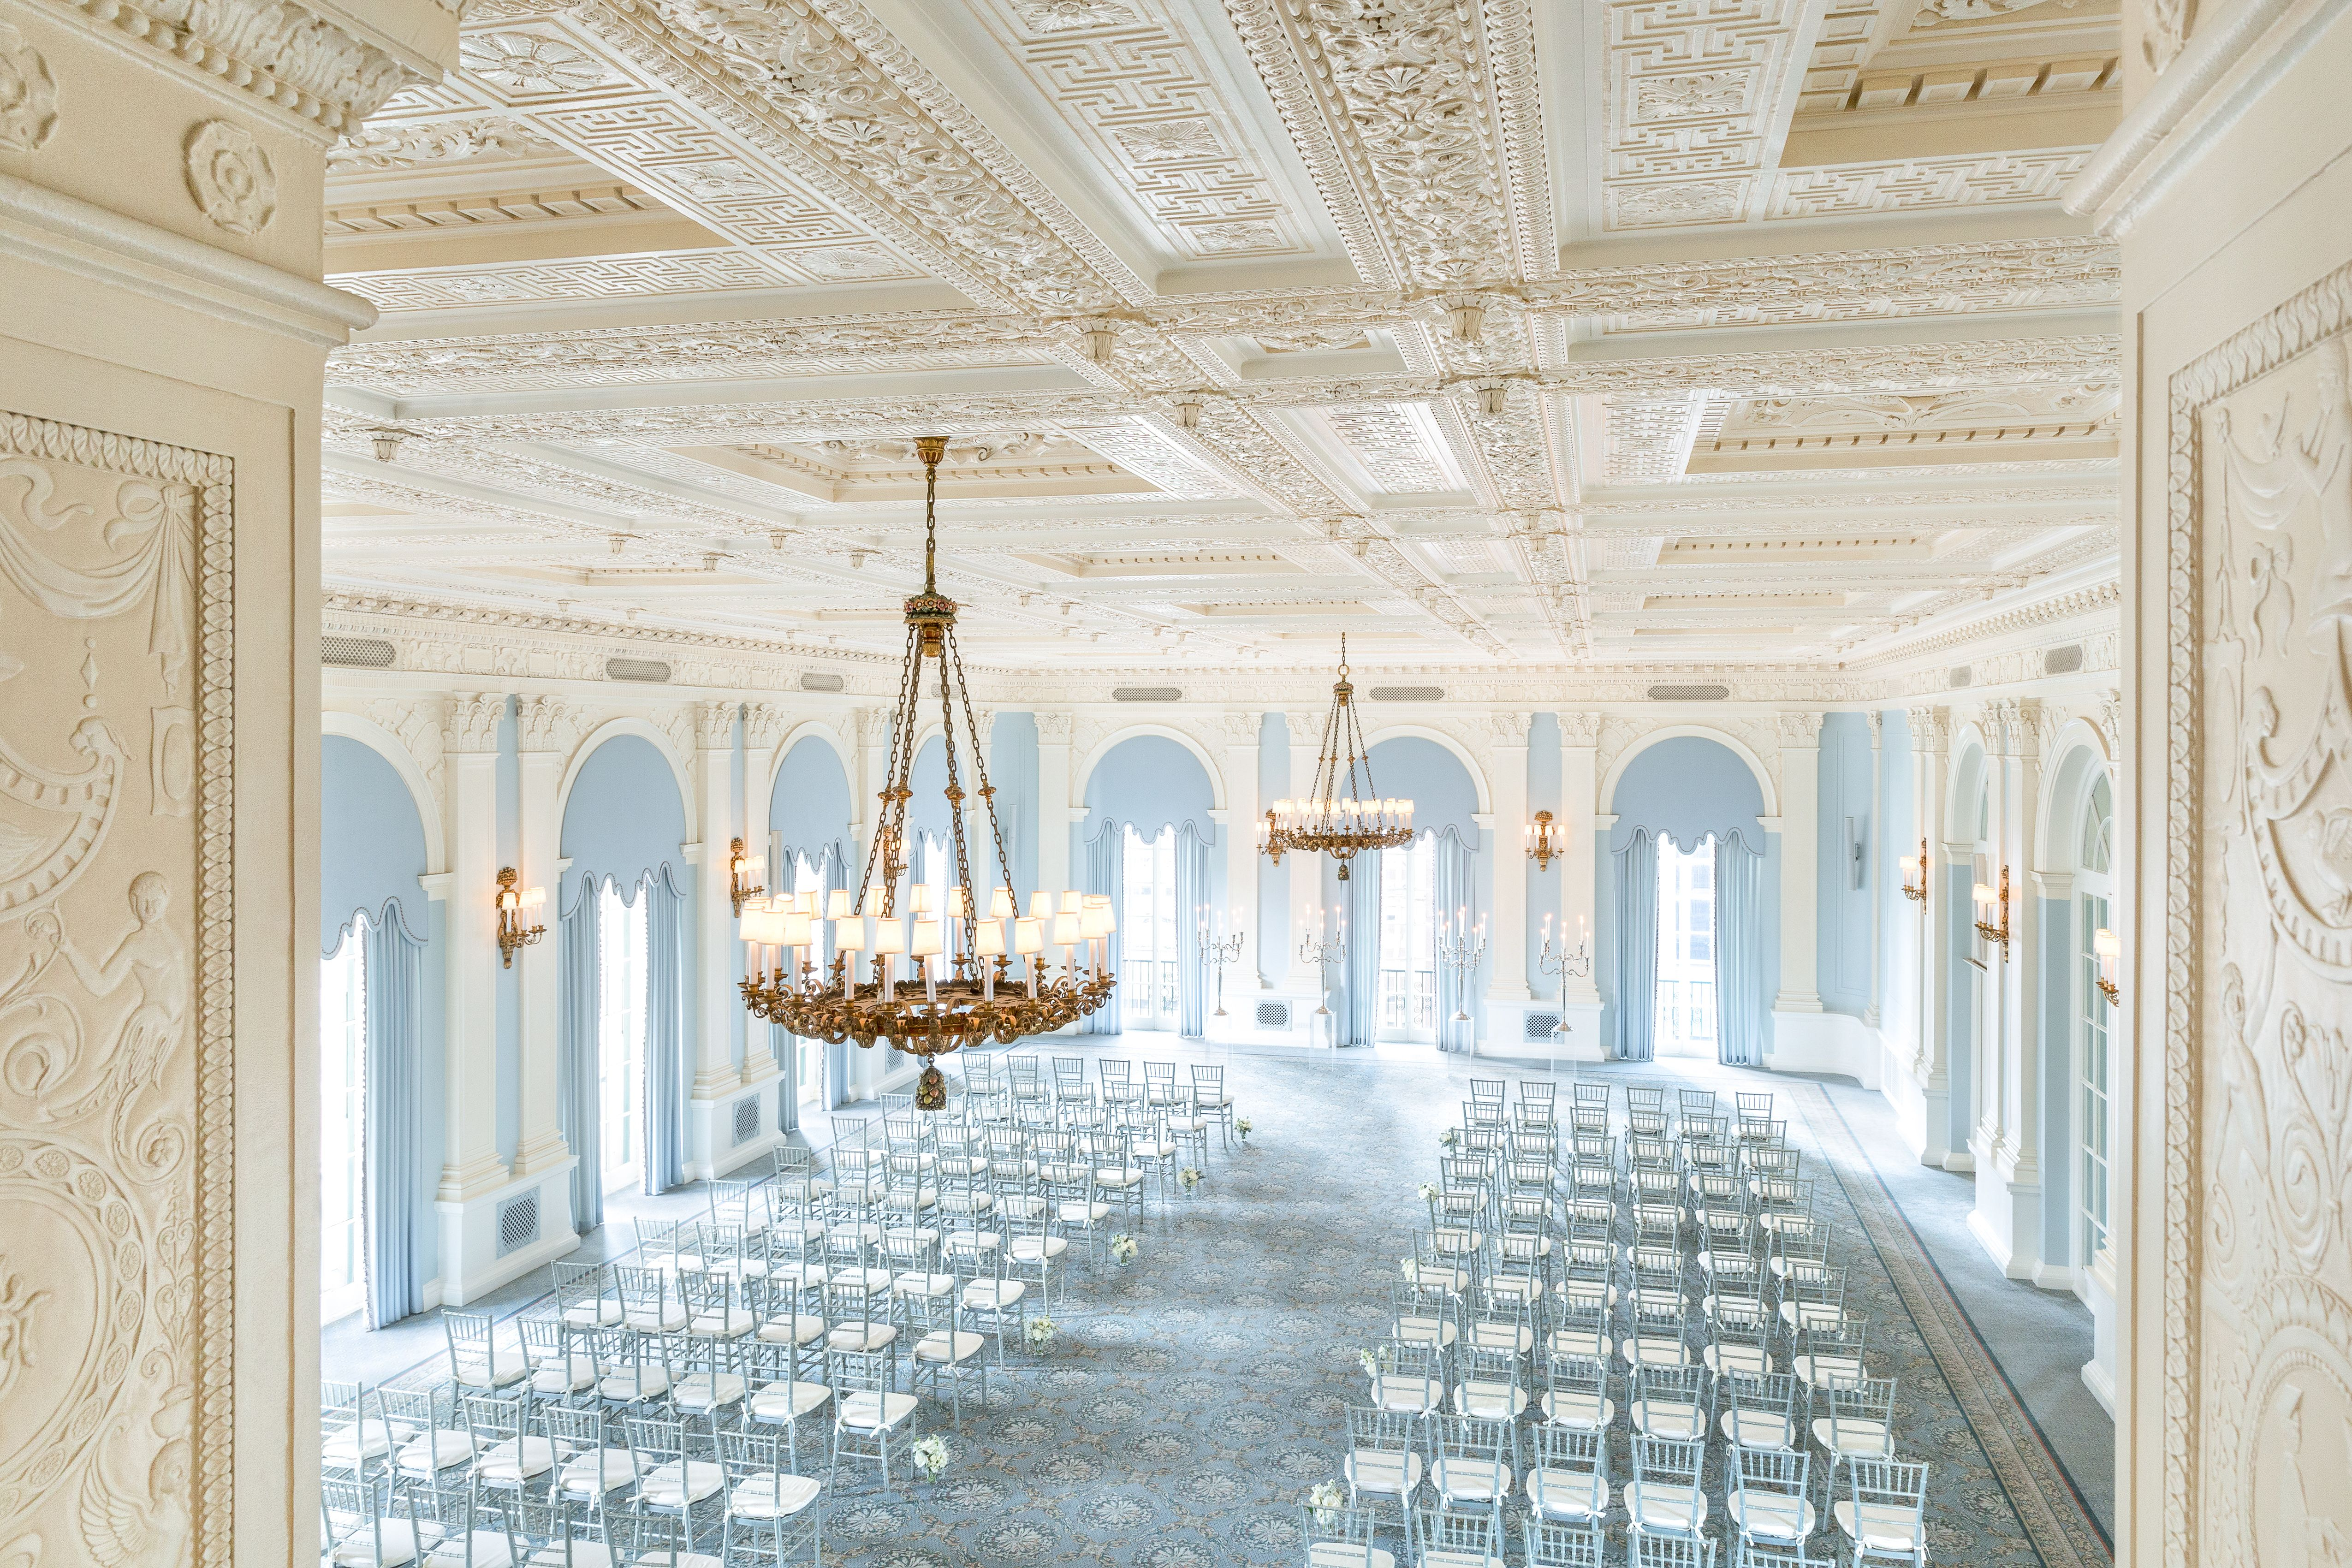 The Grand Ballroom At The Yale Club Of New York City